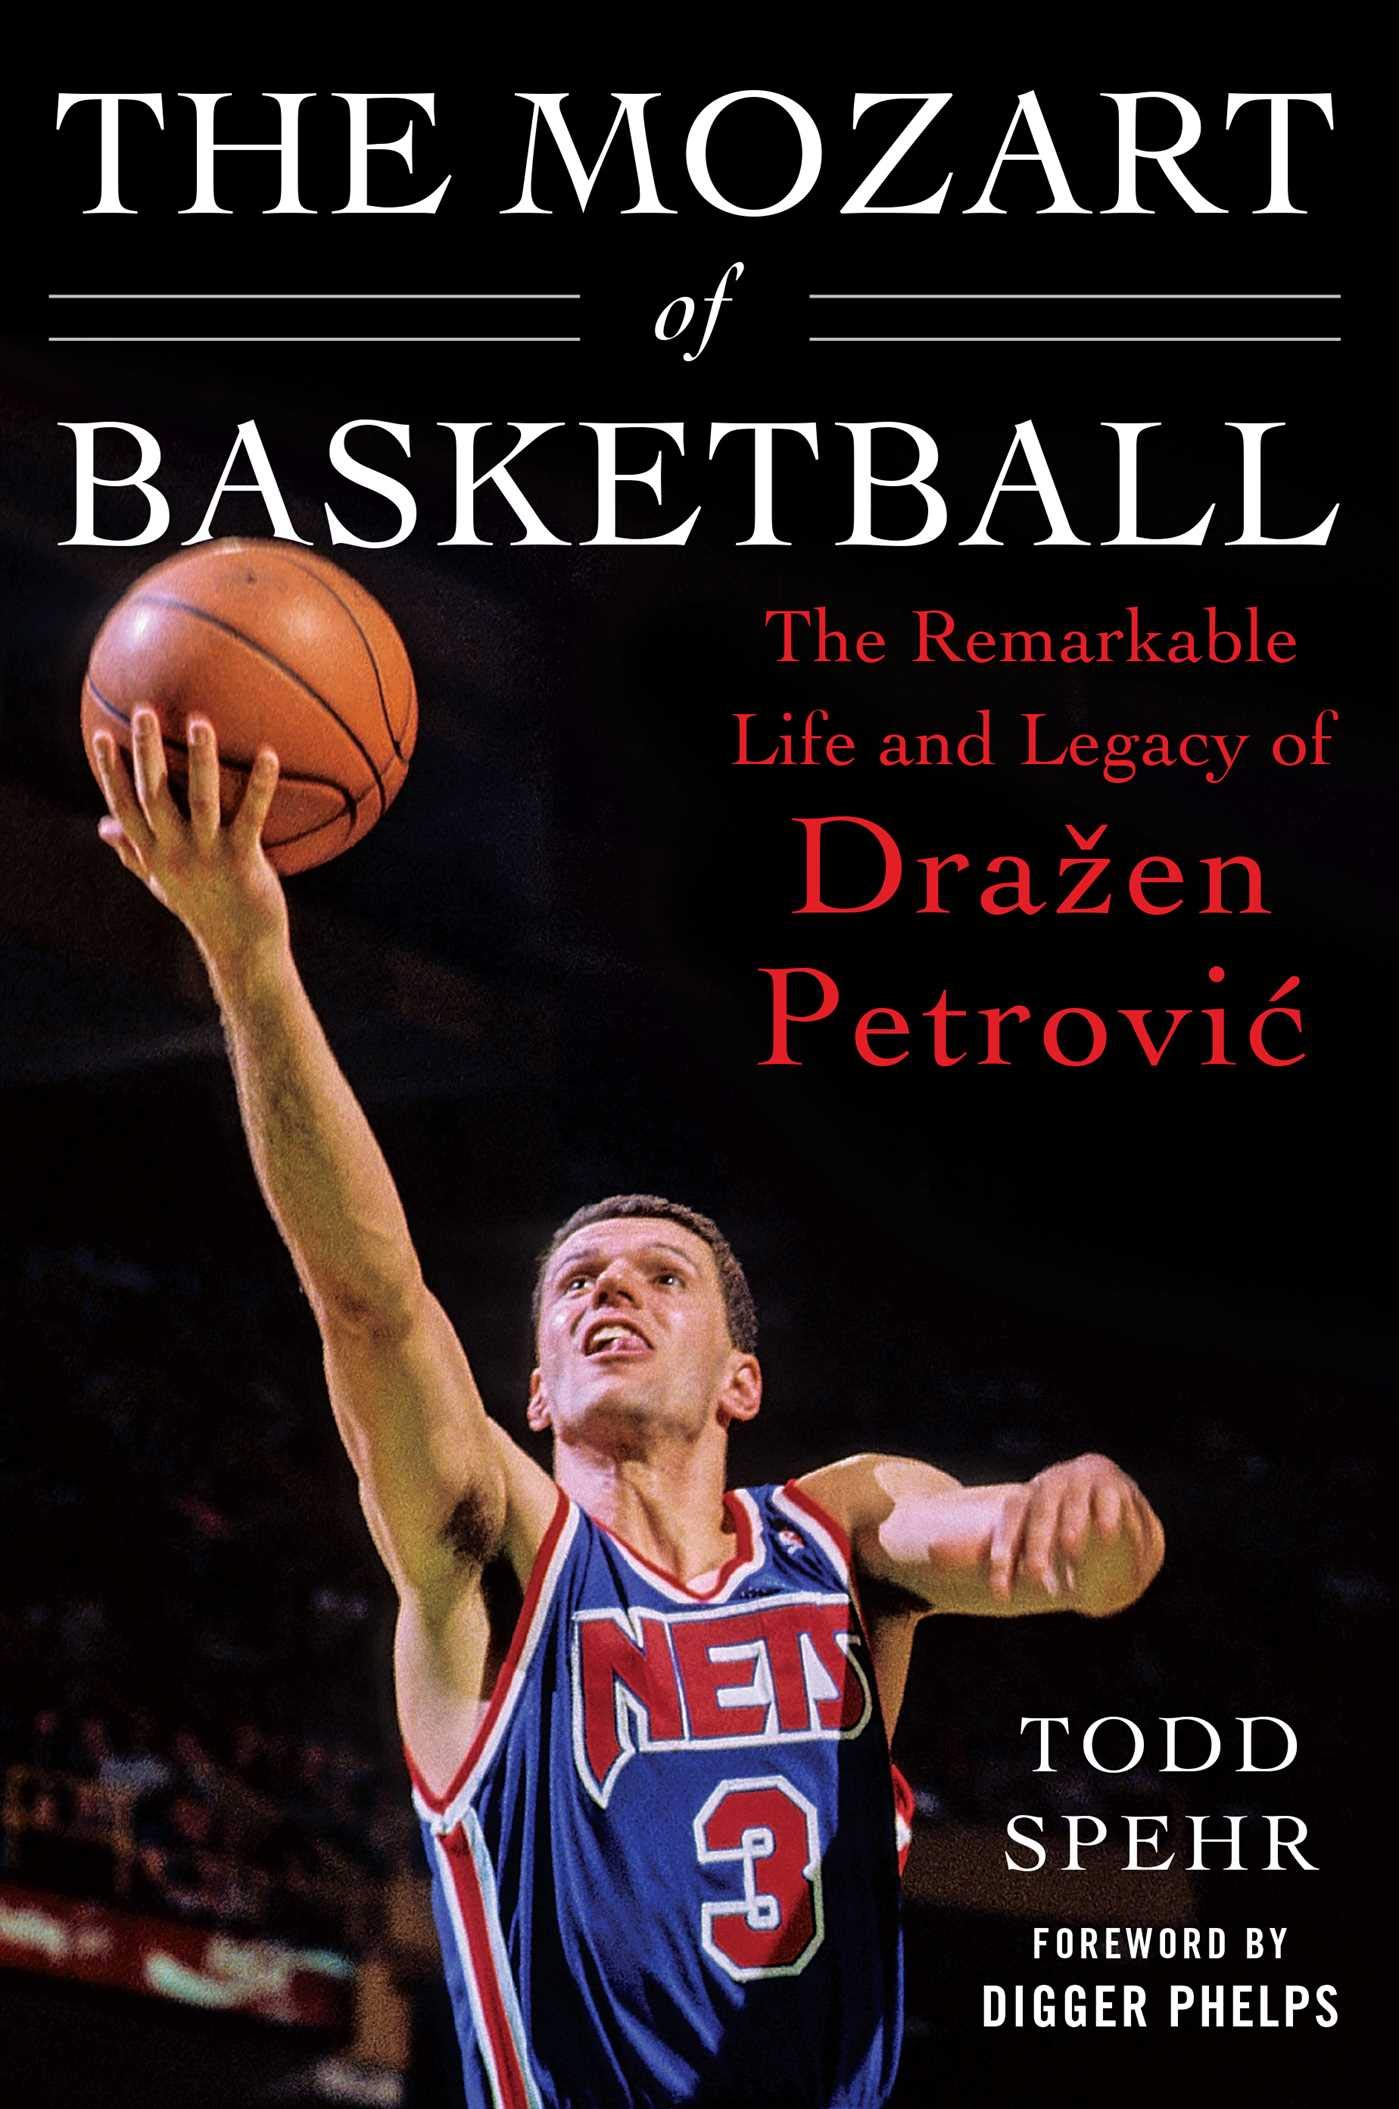 The Mozart of Basketball: The Remarkable Life and Legacy of Draa ...